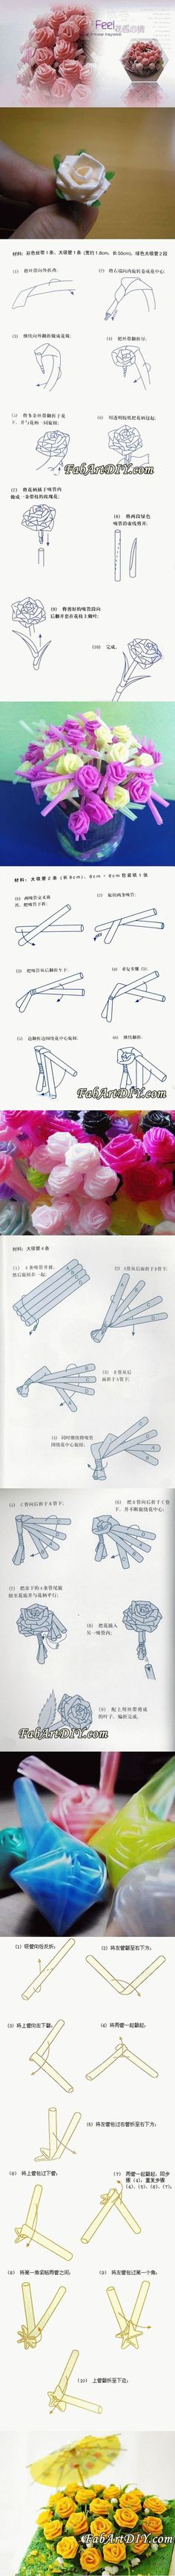 Roses made from drinking straws